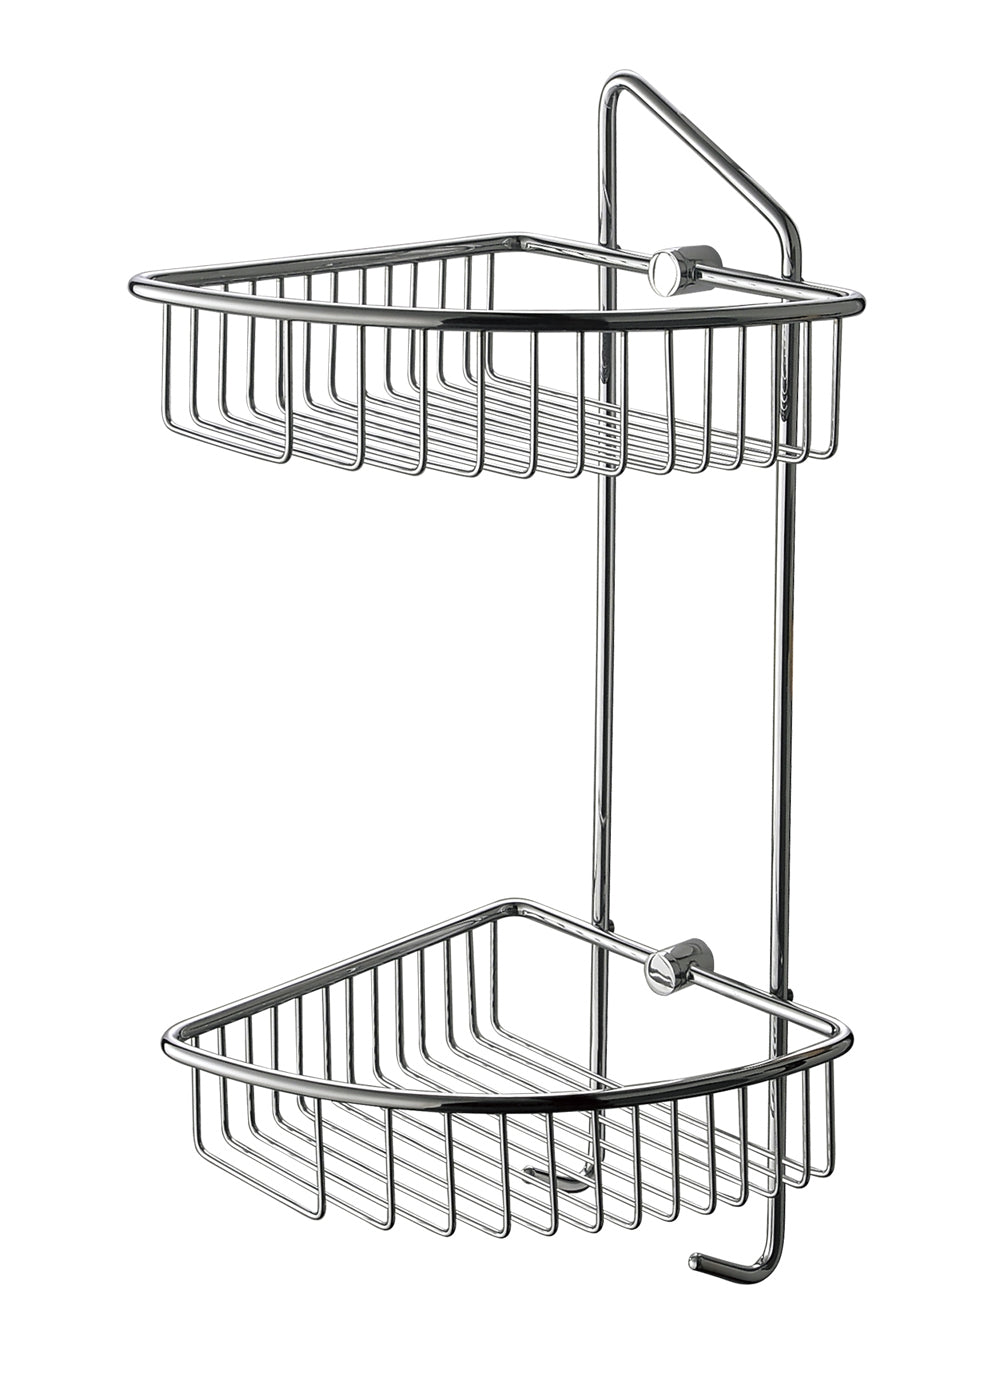 Polished Chrome Corner Mounted Double Basket Shower Shelf Bathroom Accessory - FaucetMart